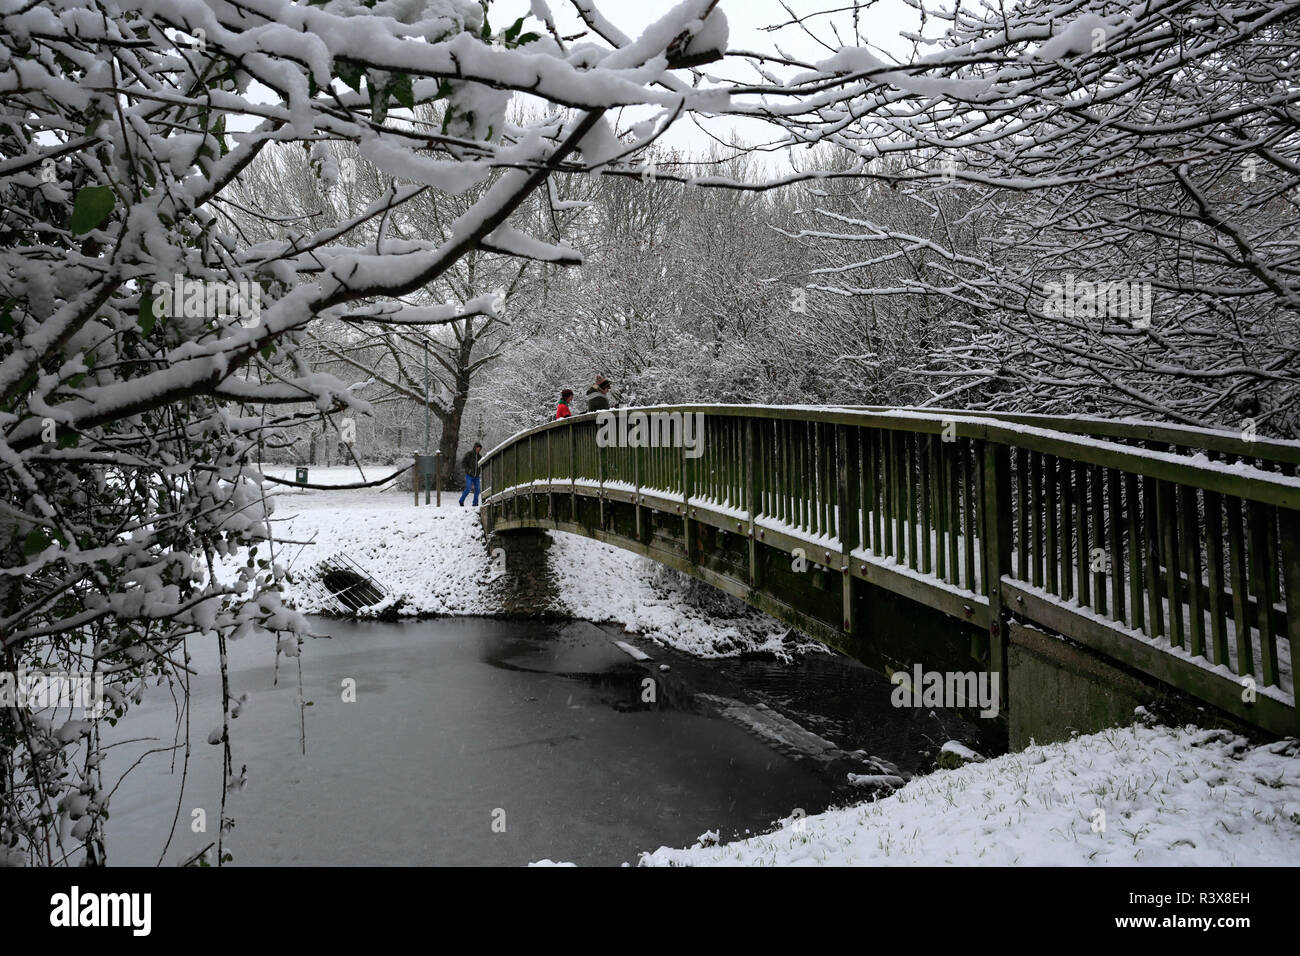 Snow at Cuckoos Hollow lakeside, Werrington Village, Cambridgeshire, England, UK - Stock Image